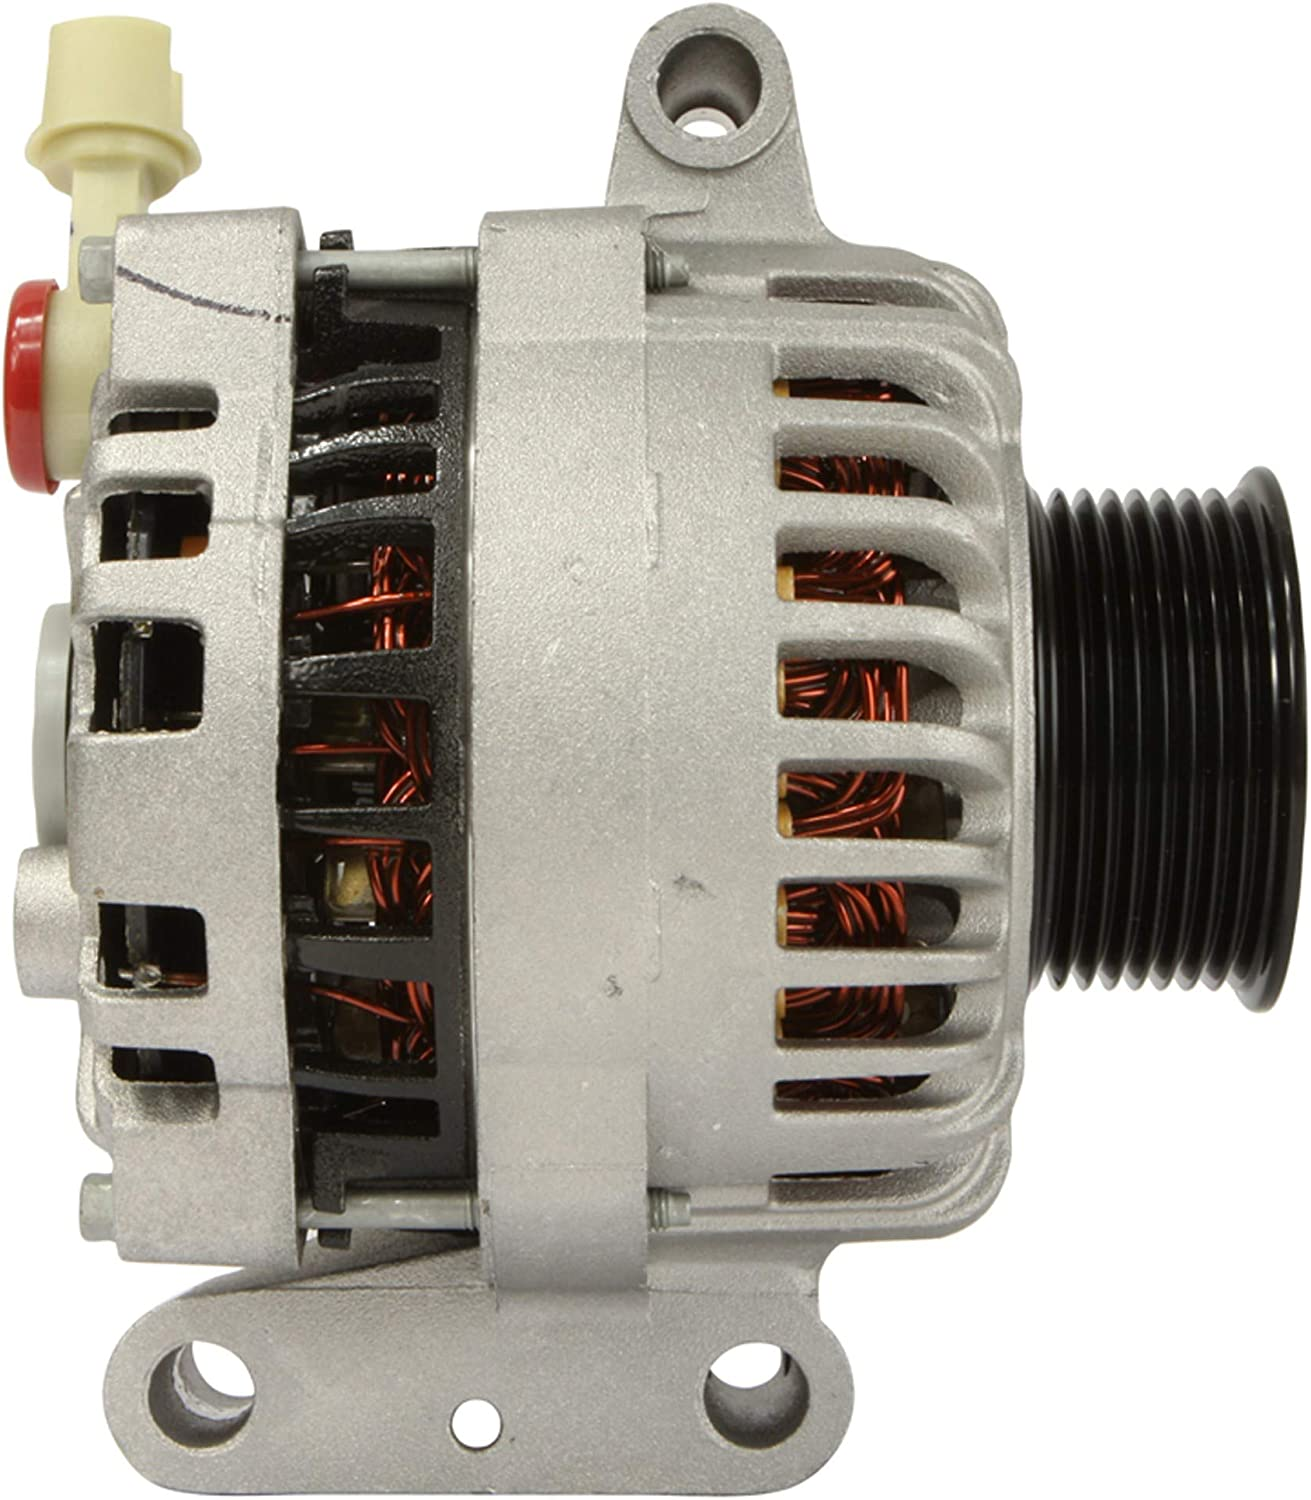 DB Electrical AFD0065 New Alternator For Ford E Series High Output F450 SUPER-DUTY TRUCK 99 00 01 1999 2000 2001 334-2281 400-14038 ALT-1600 7.3L 7.3 FORD VAN 99 00 01 02 03 1999 2000 2001 2002 2003